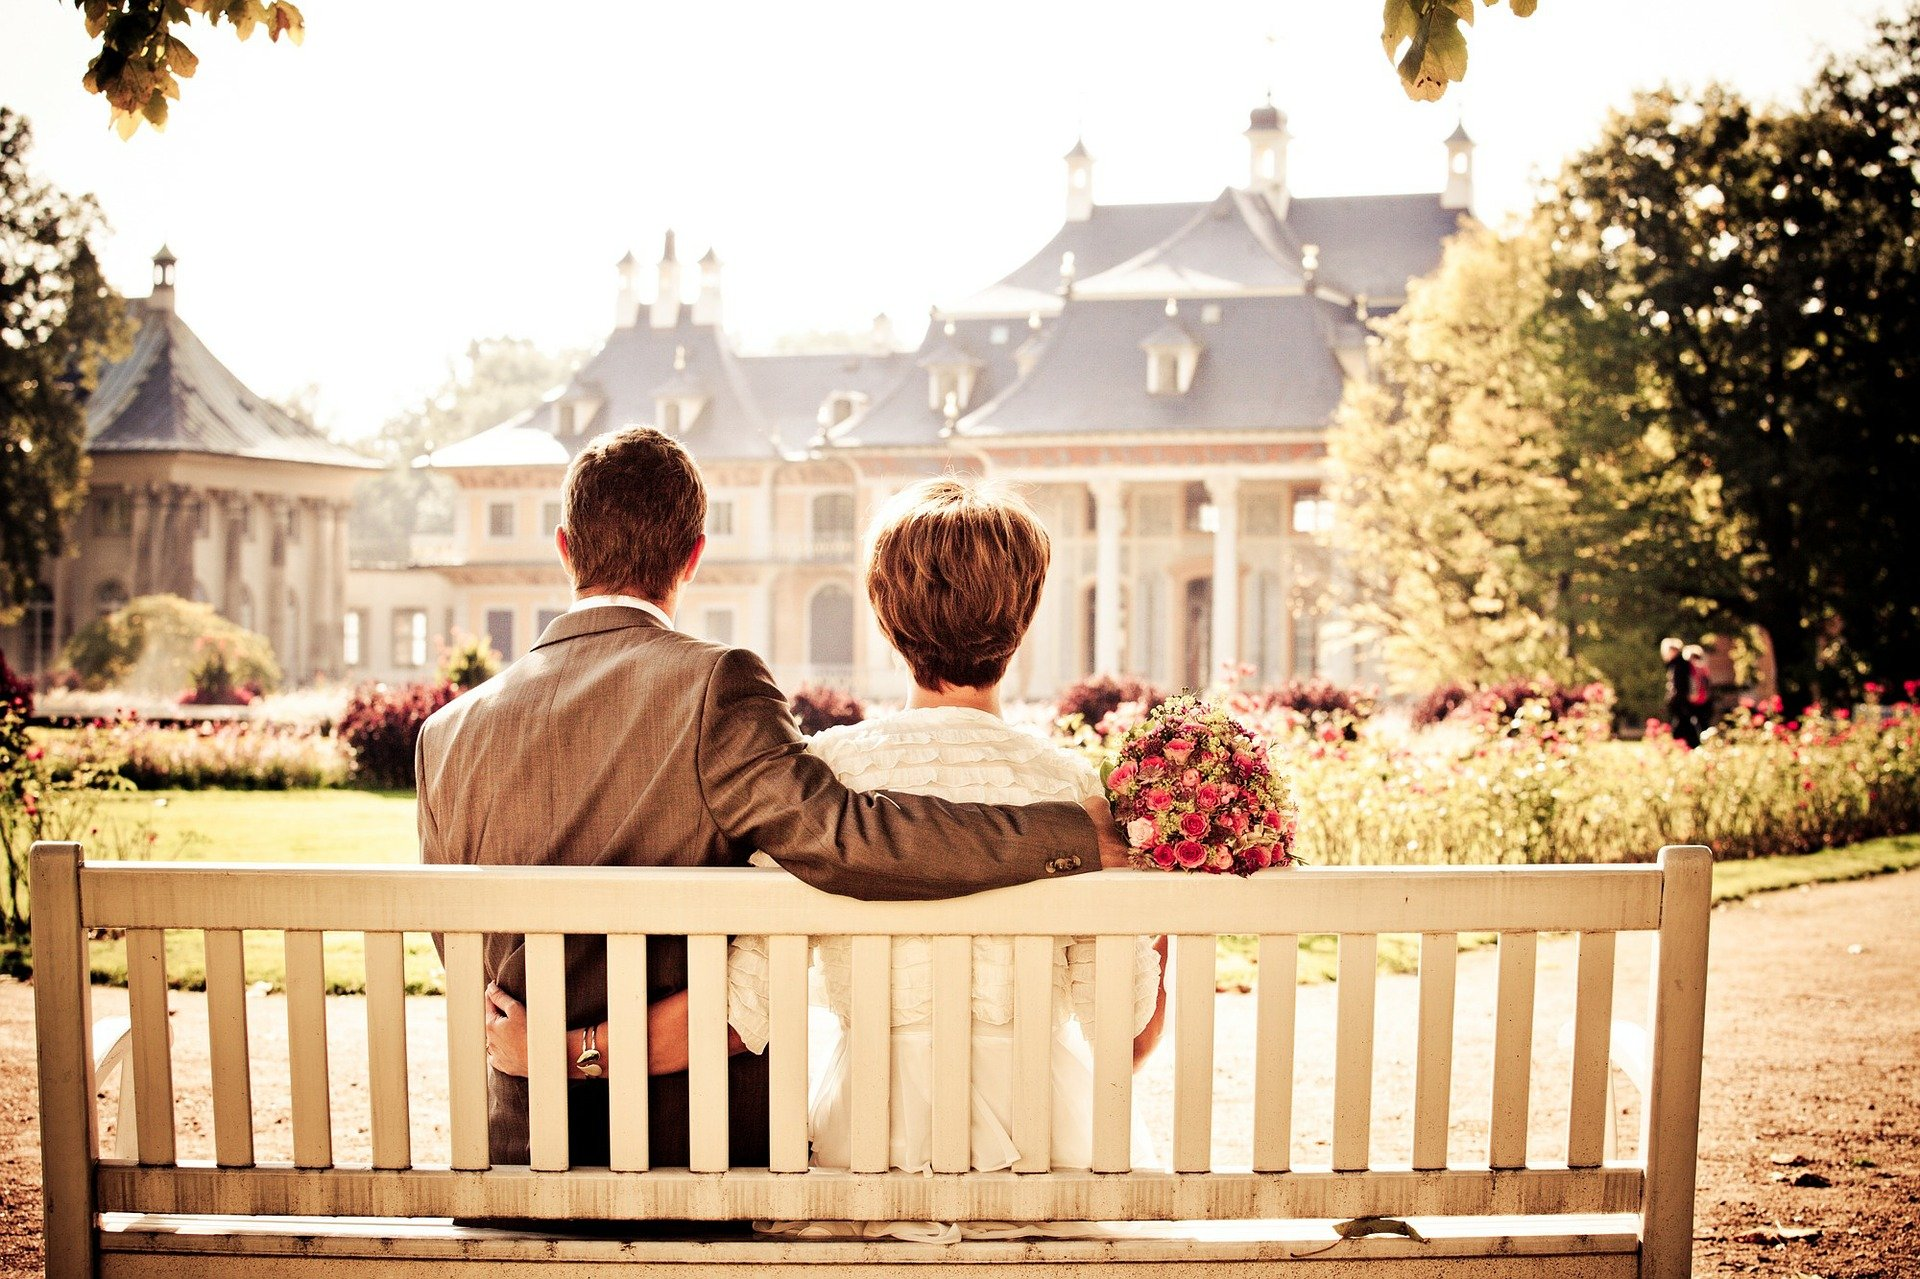 Couple sitting on a bench with their arms wrapped around each other | Source: Pixabay